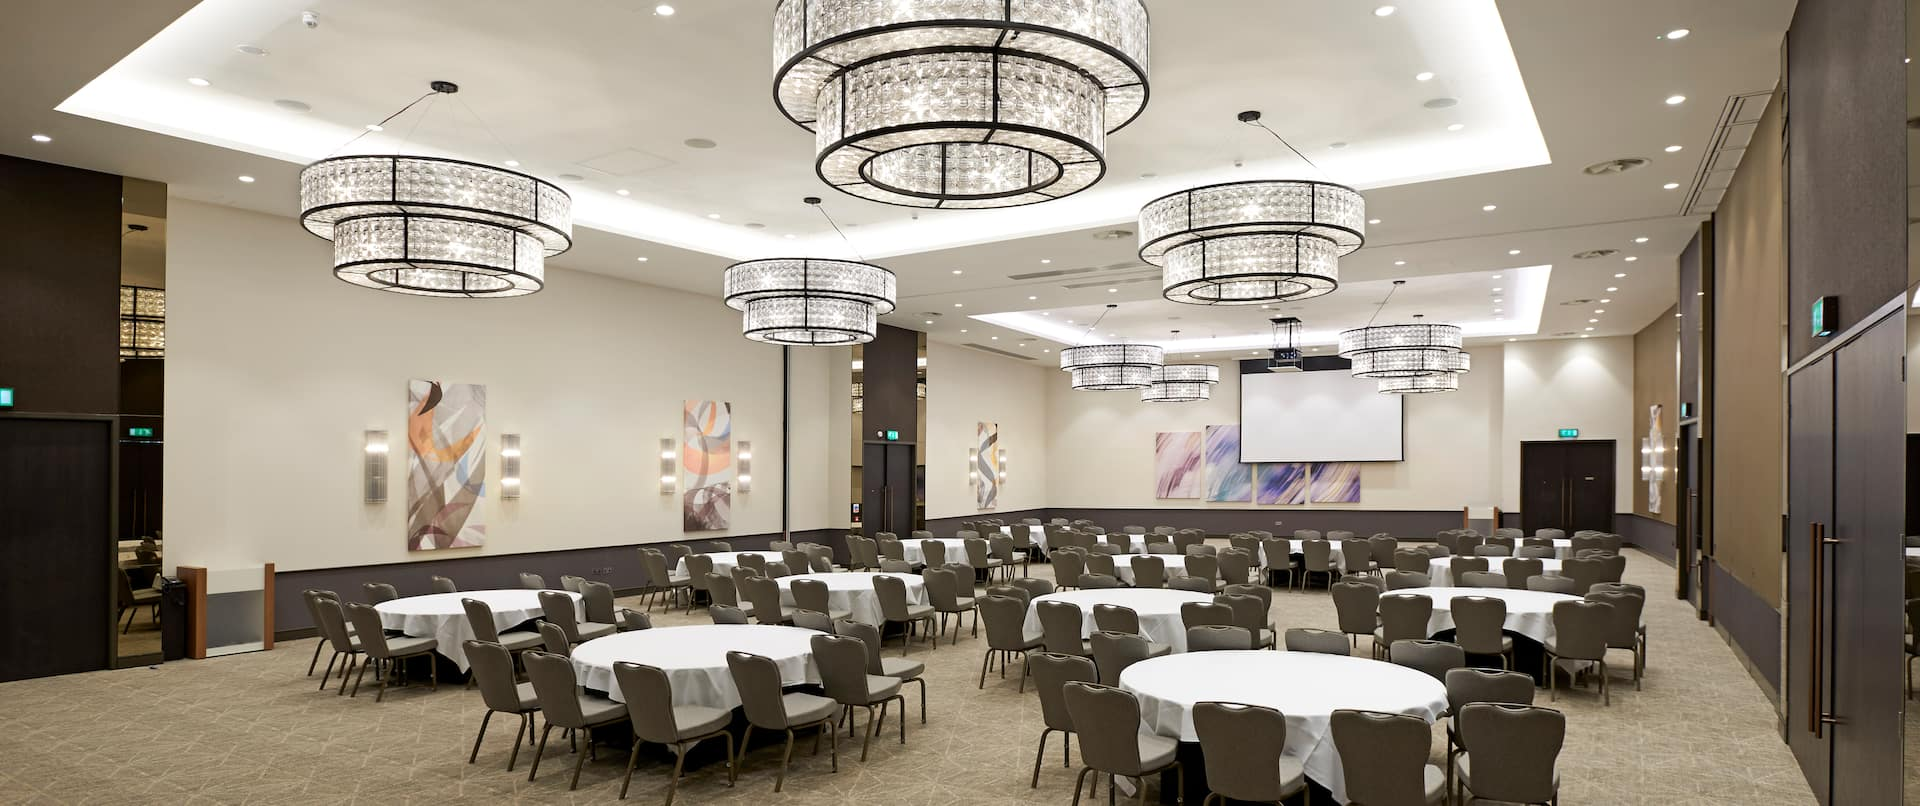 Ballroom With Dining Seating